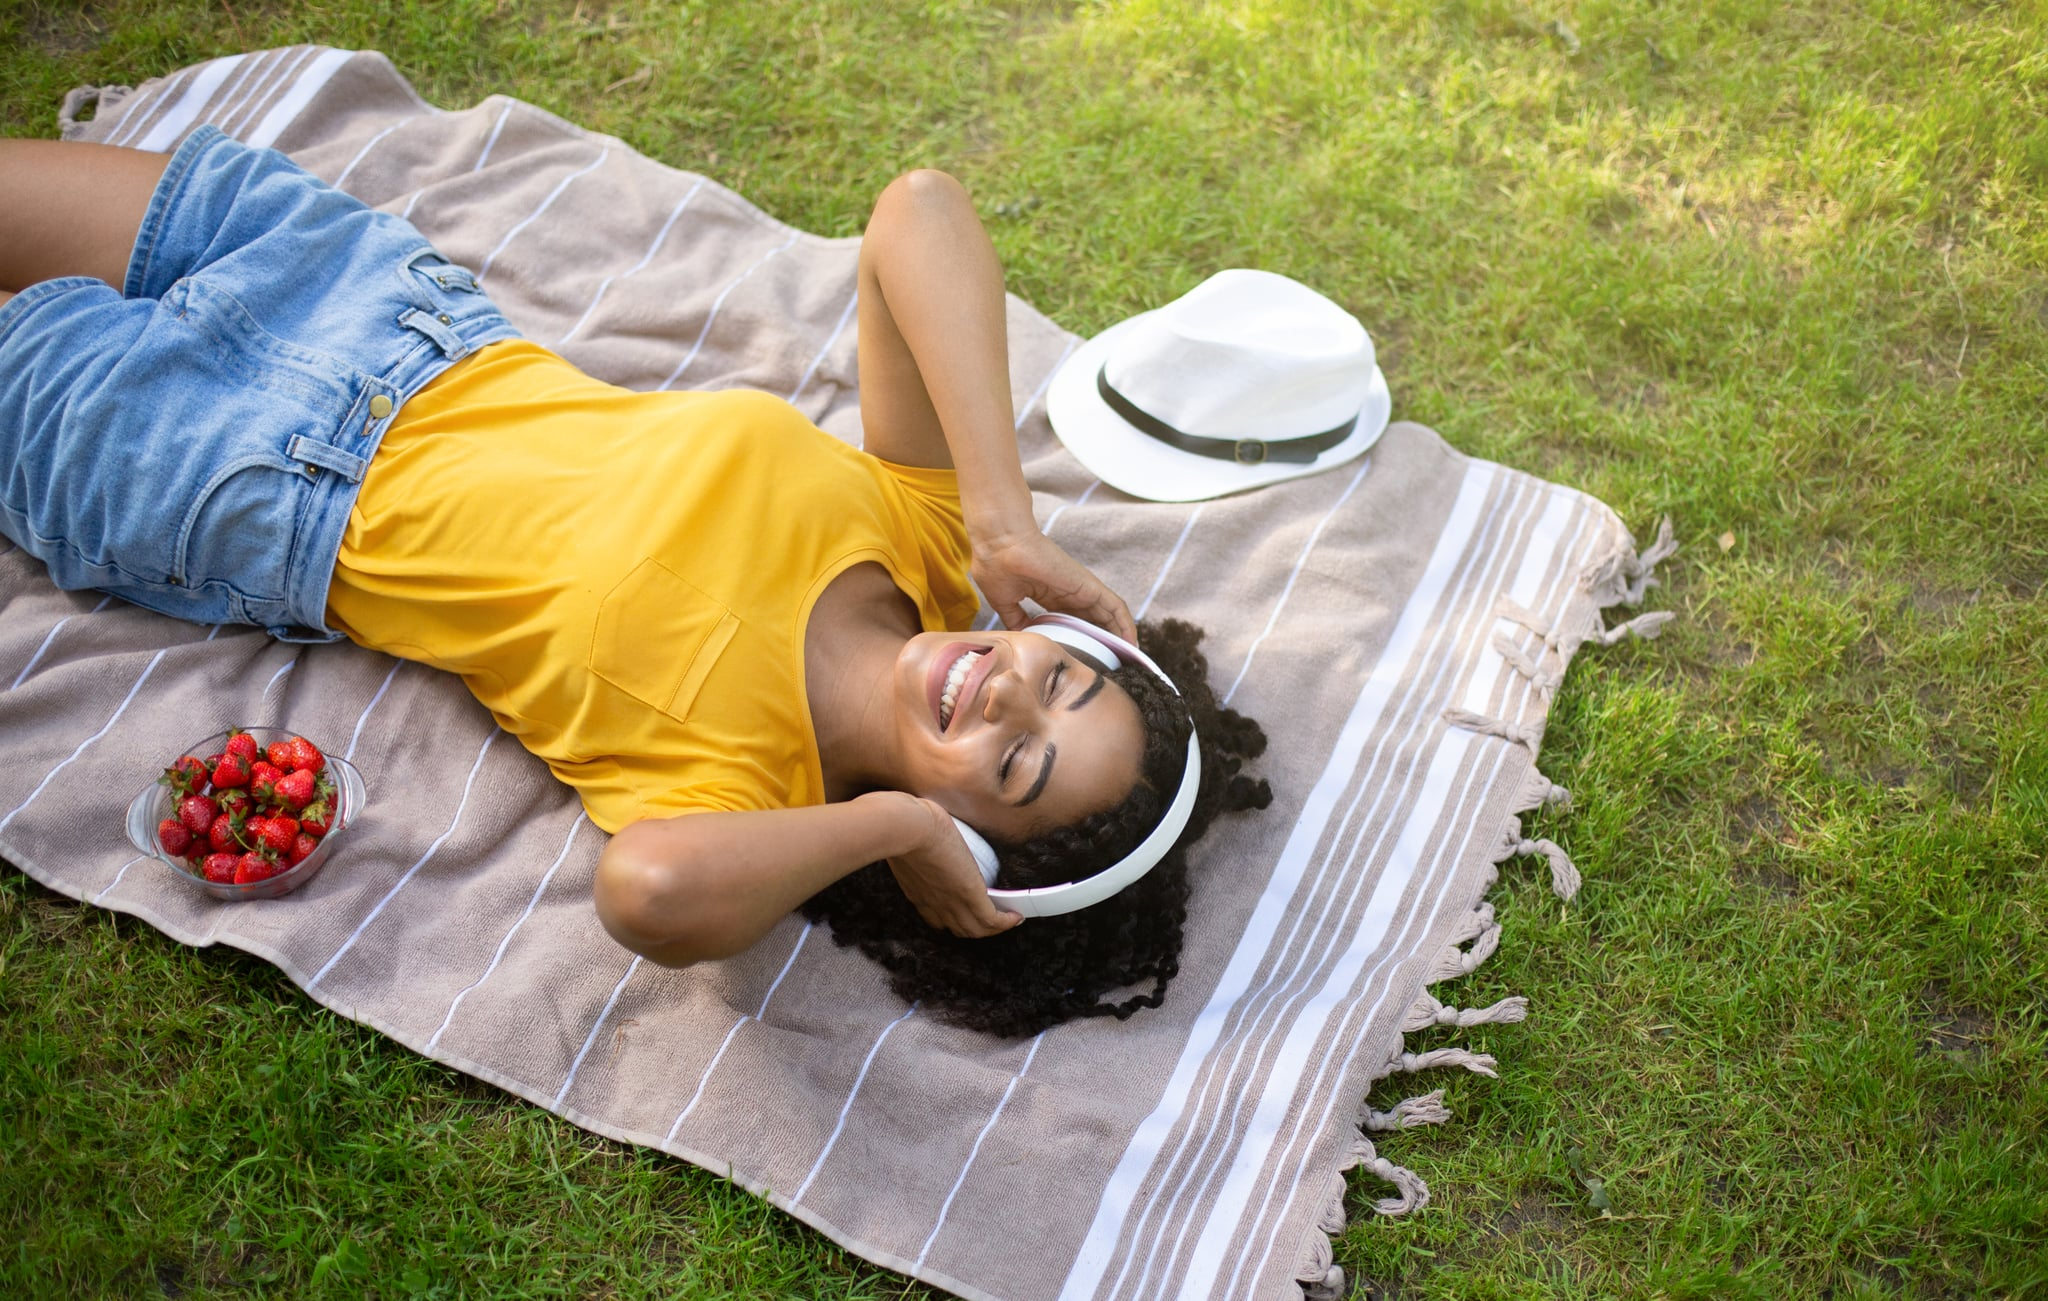 Above view of beautiful African American woman with headphones listening to music during picnic at park